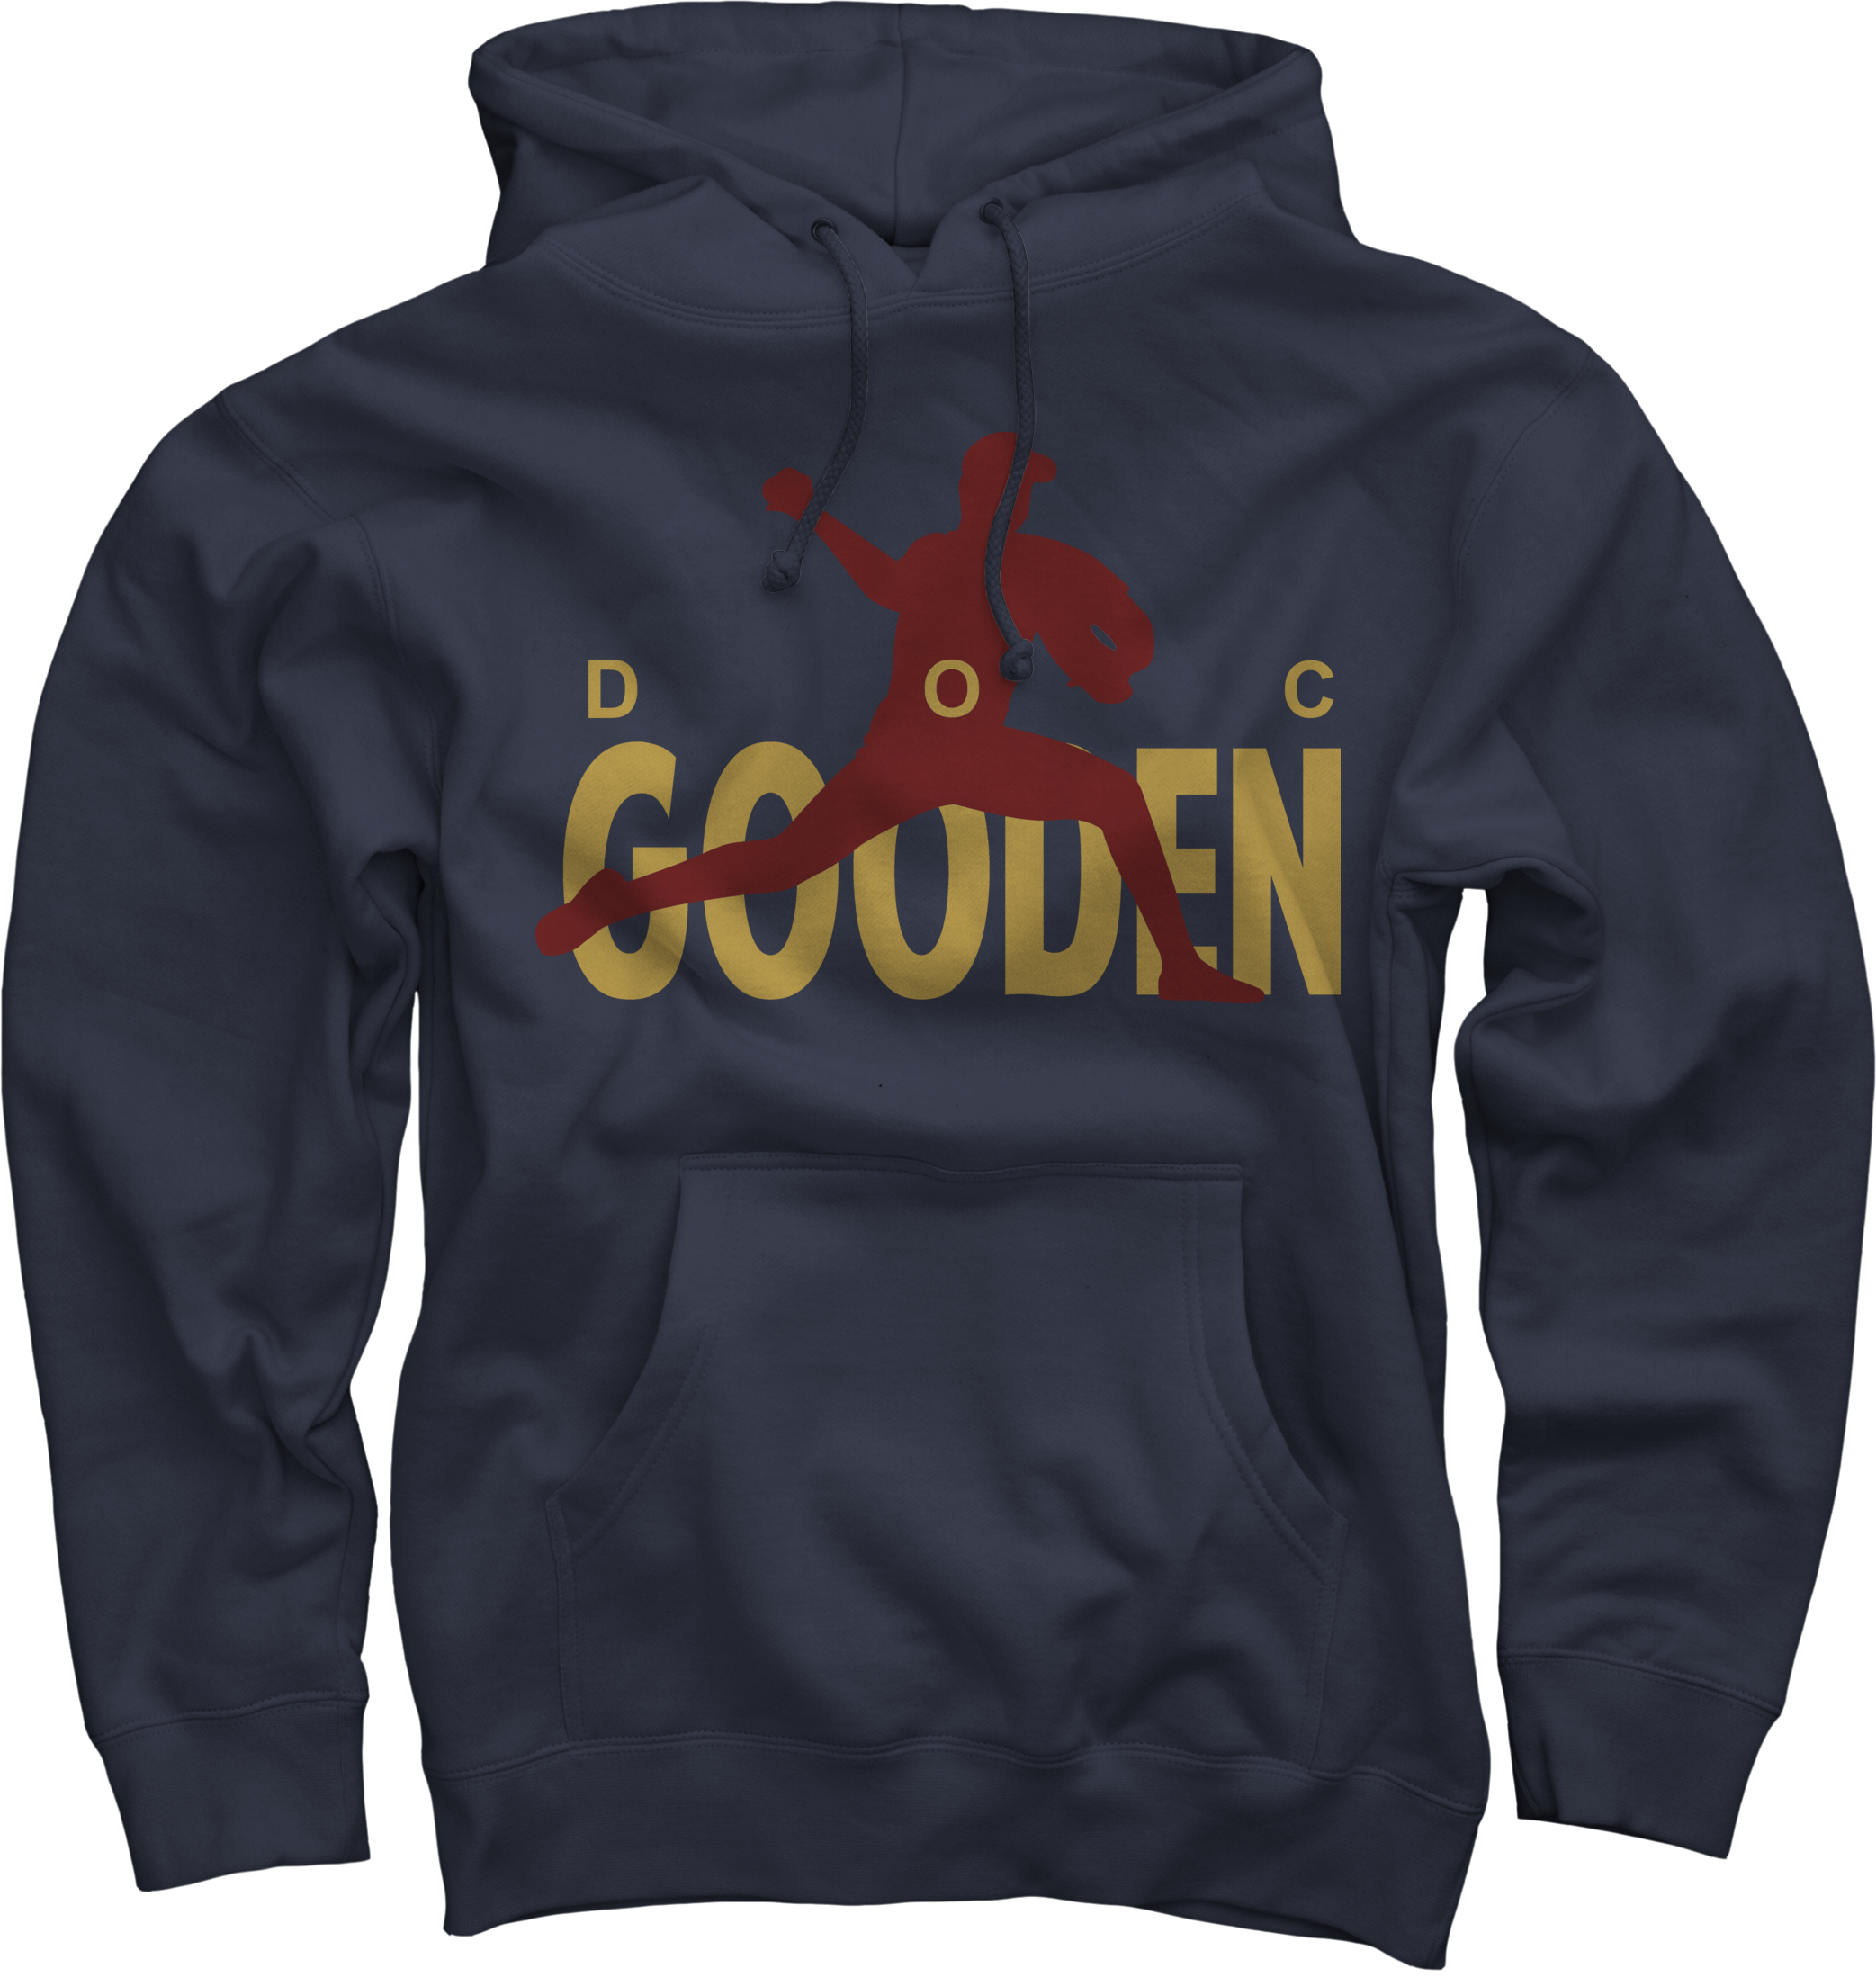 Doc Gooden Championship Edition Sweatshirt